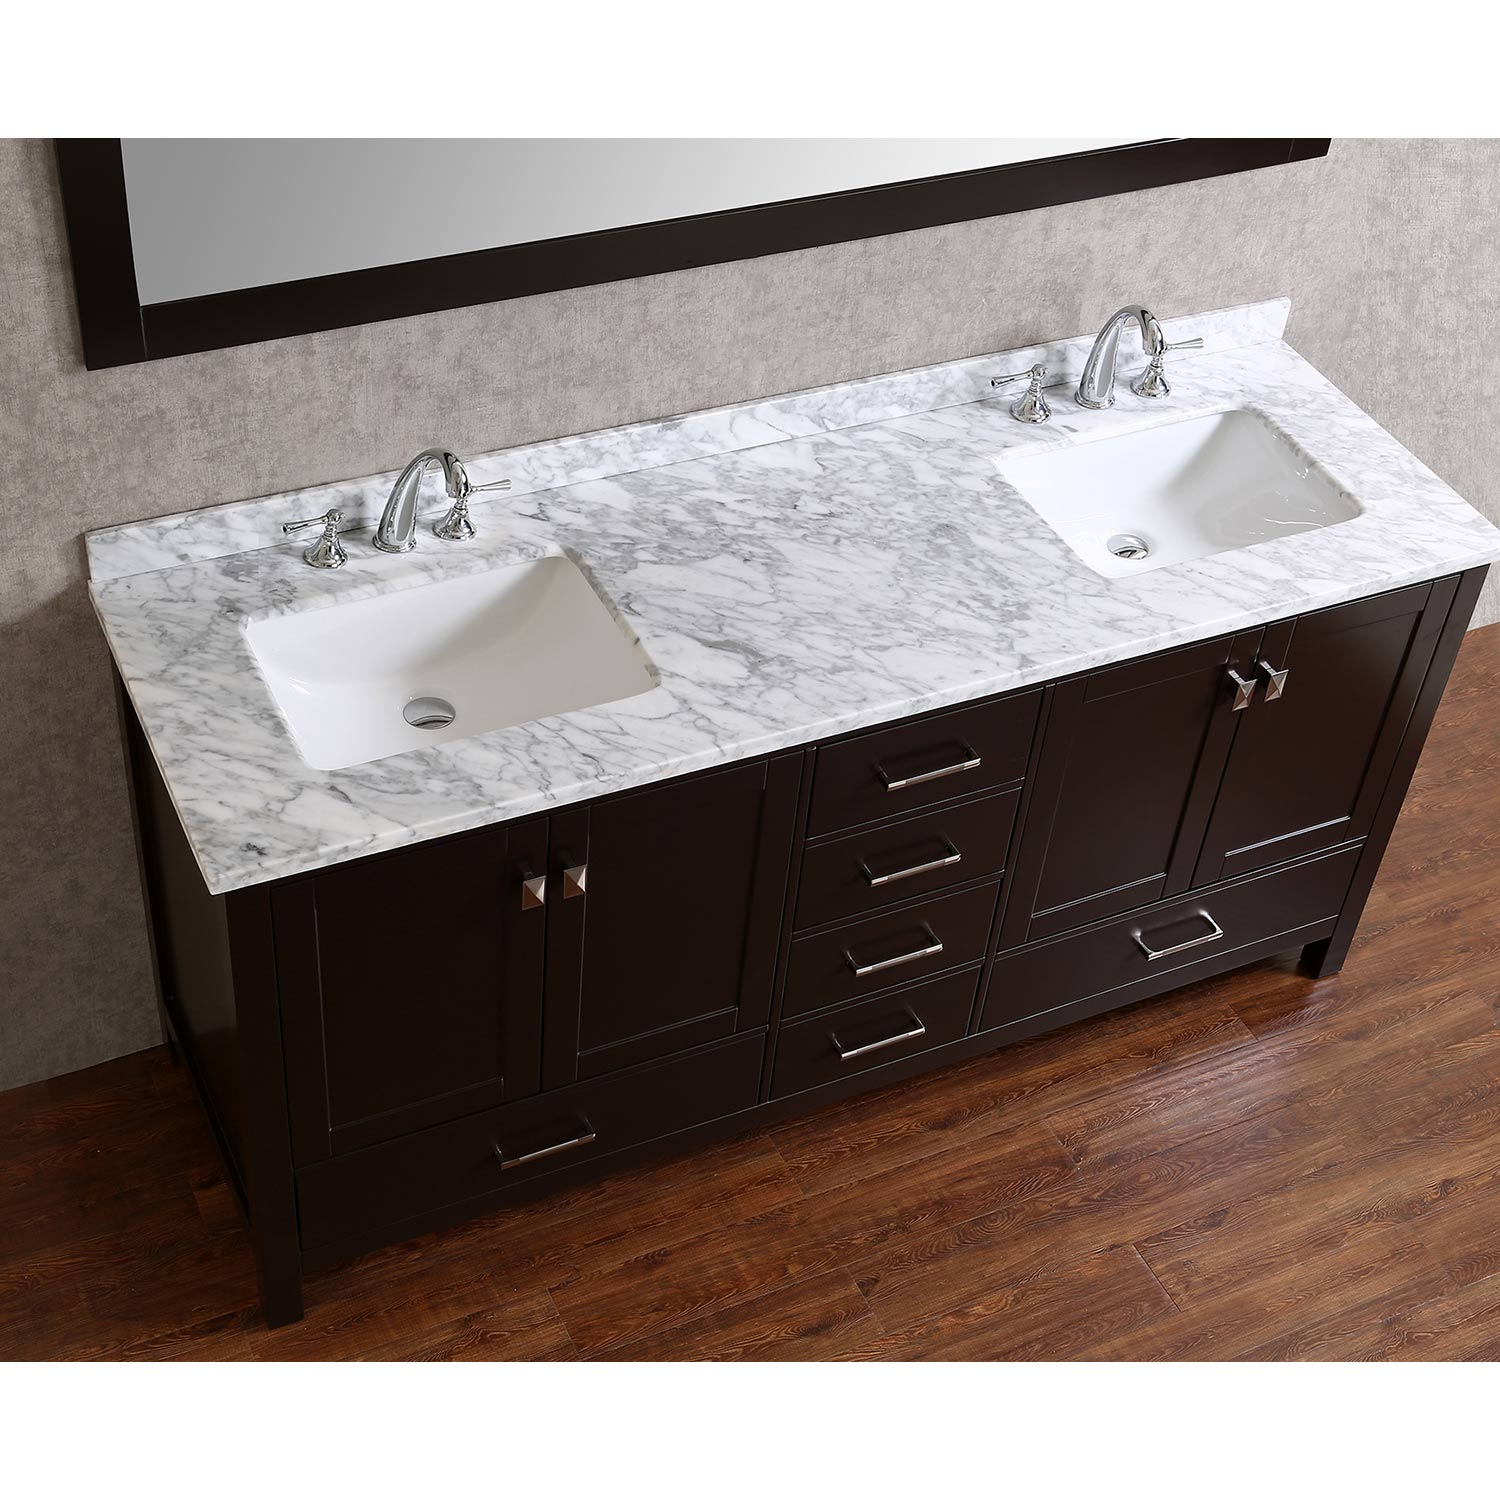 antique vanity fabulous sinks wash cabinet undermount coffee at double bathroom on for gray chelles and